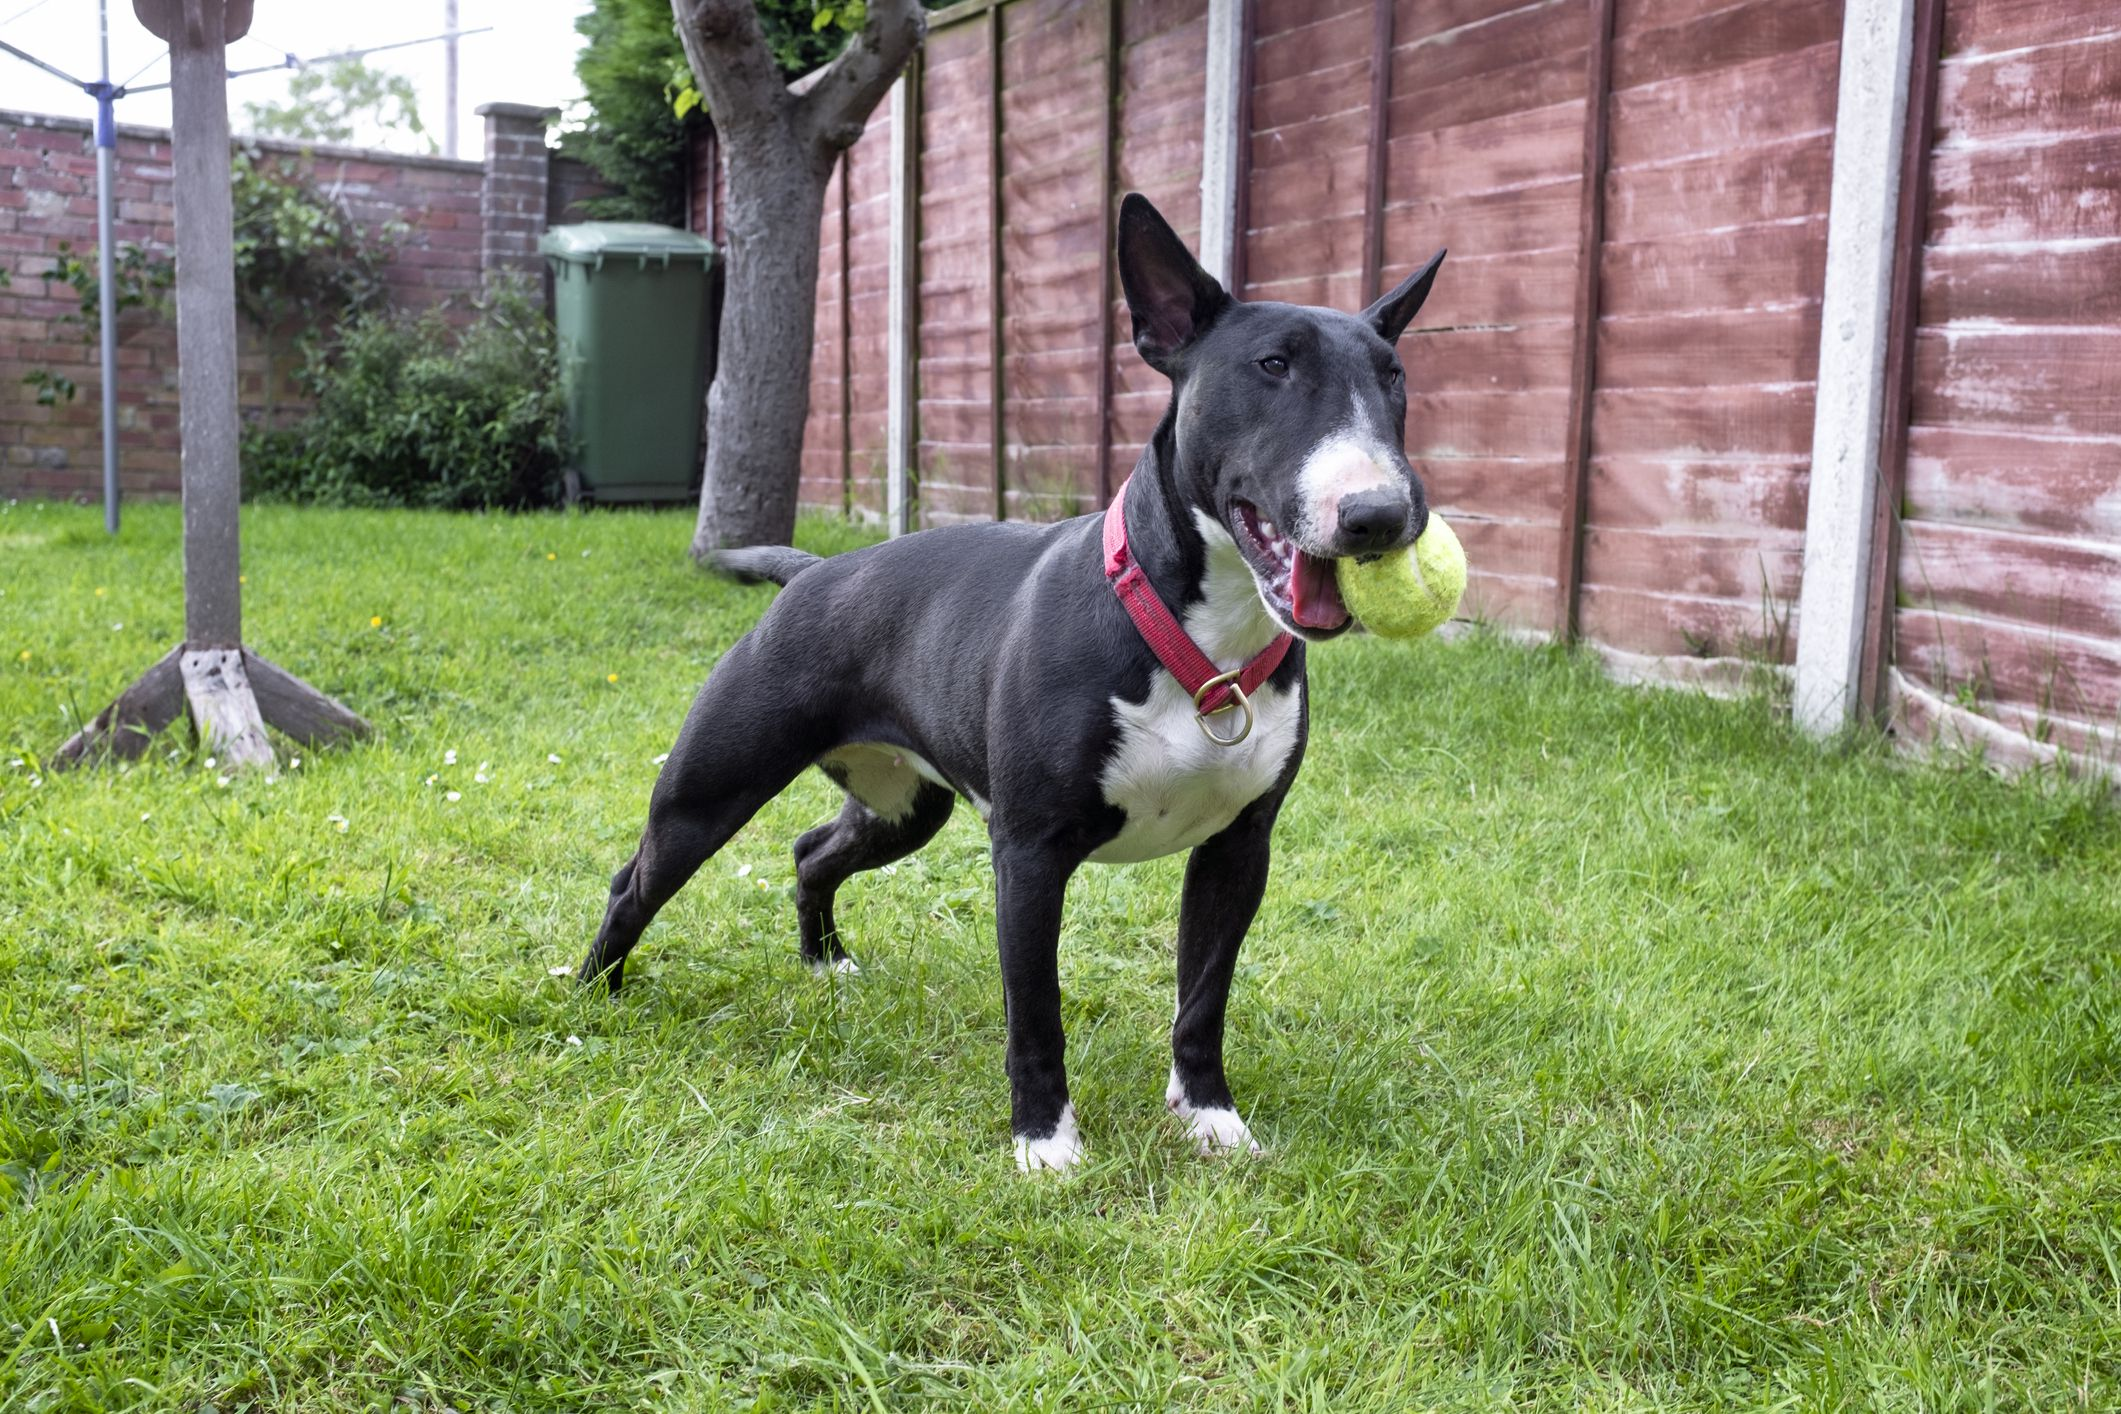 Bull terrier playing fetch